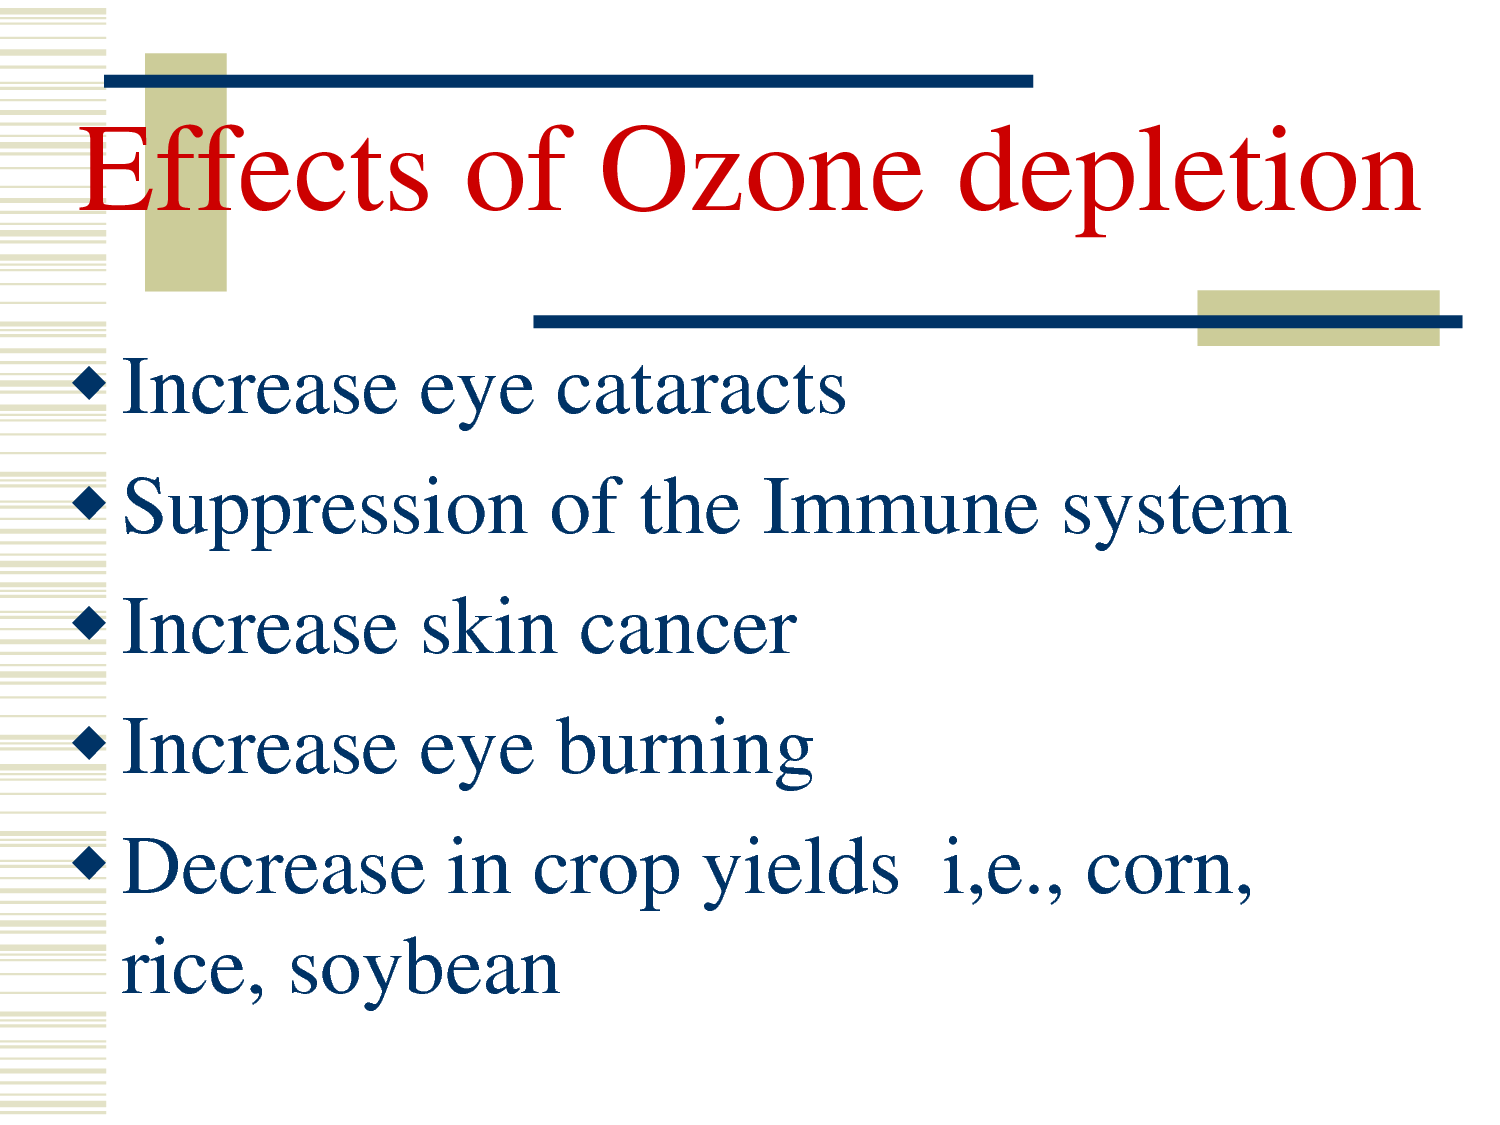 persuaive speech ozone layer Sample persuasive speech #ells and topsoil 6 the release of high levels of methane into the atmosphere contributes to the depletion of the ozone layer.